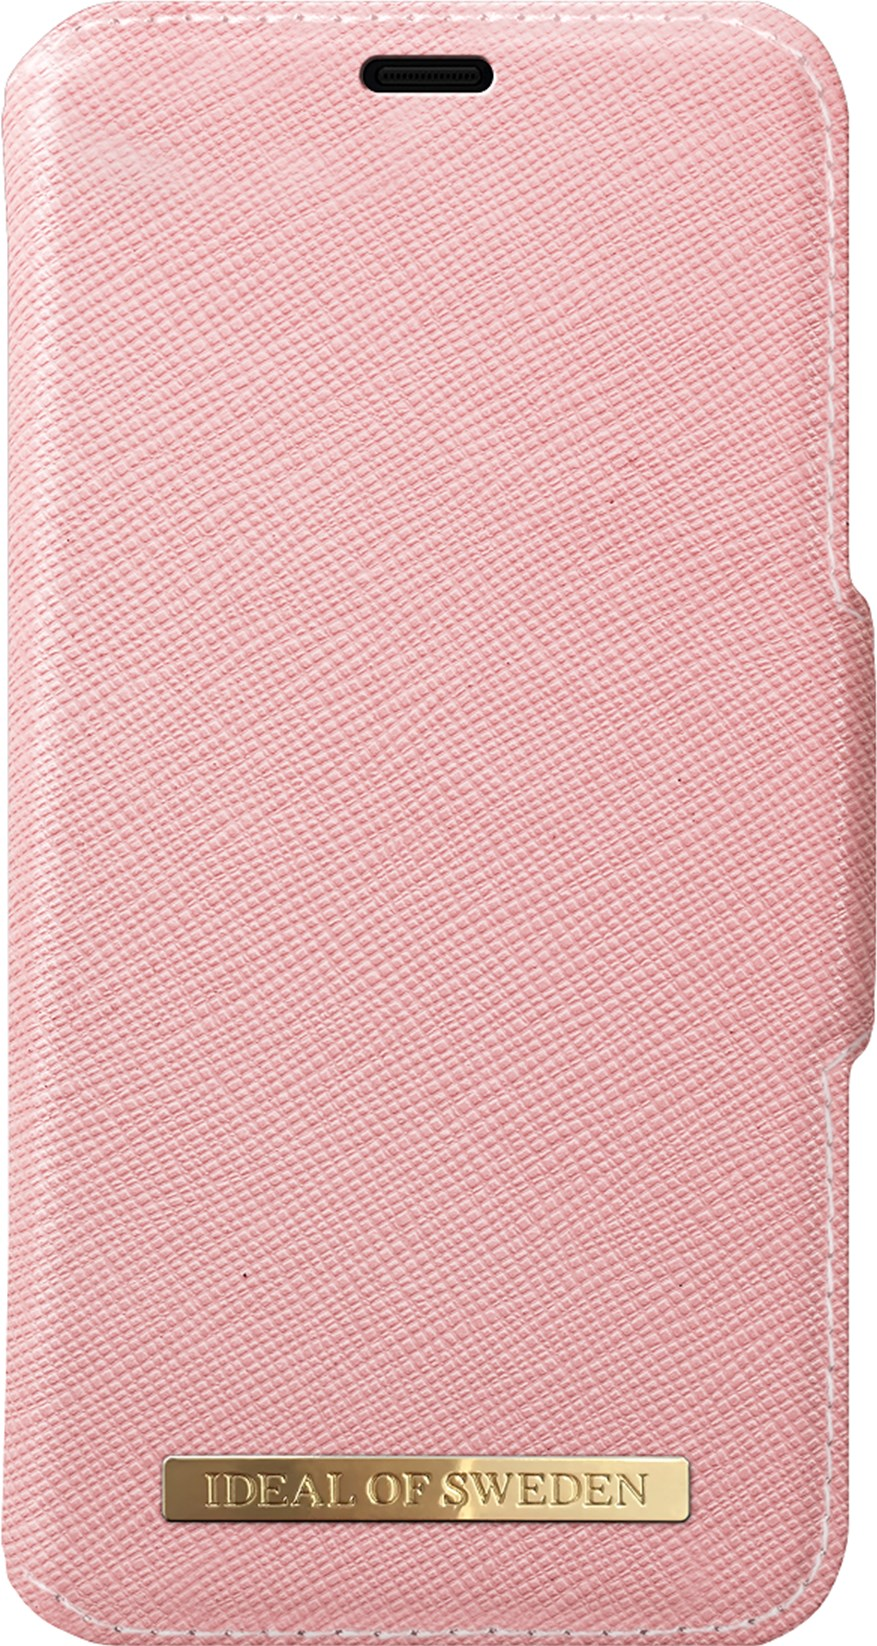 iDeal of Sweden Ideal Fashion Wallet Samsung Galaxy S10 Plus Pink